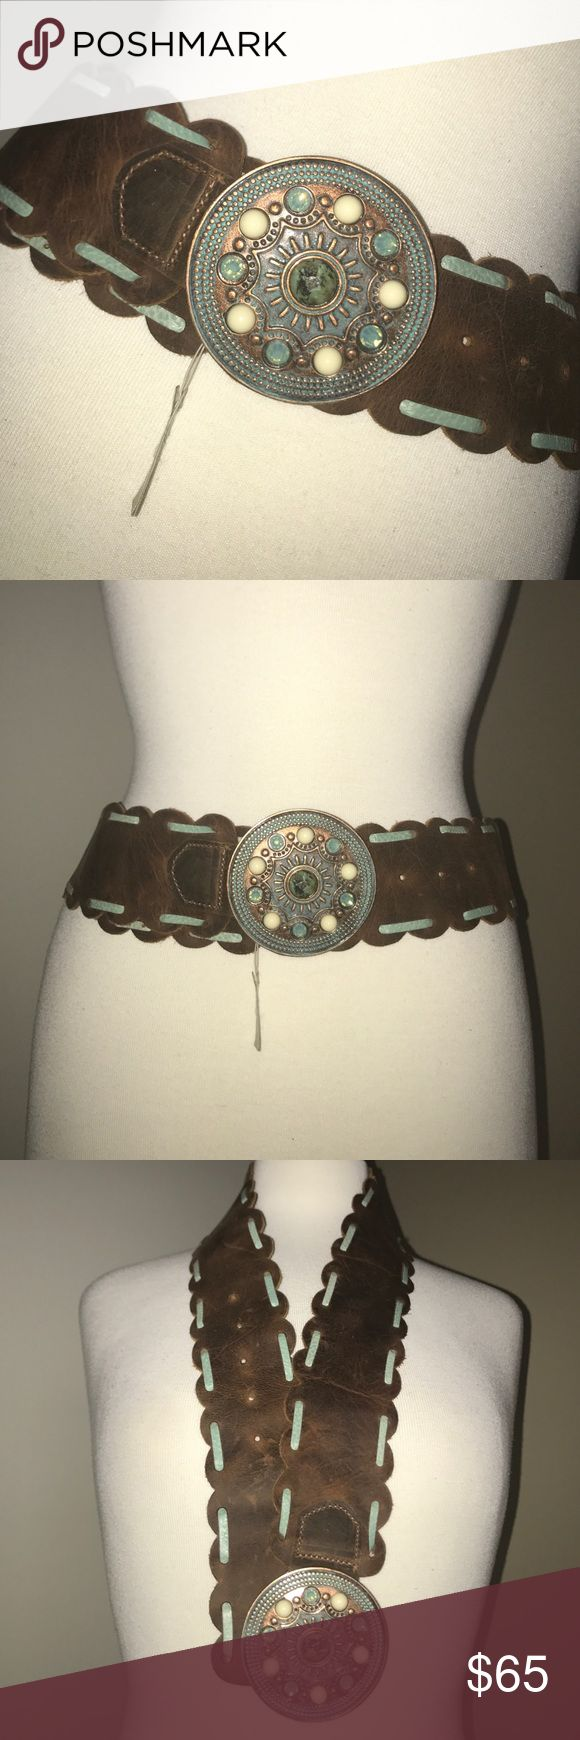 Boston Proper Cognac Turq Stone Medallion Belt Beautiful!! NEVER WORN/ Brand New/ Turqoise stone mix with pearl accents/ Embroidered  with turquoise snakeskin in belt loop Boston Proper Accessories Belts